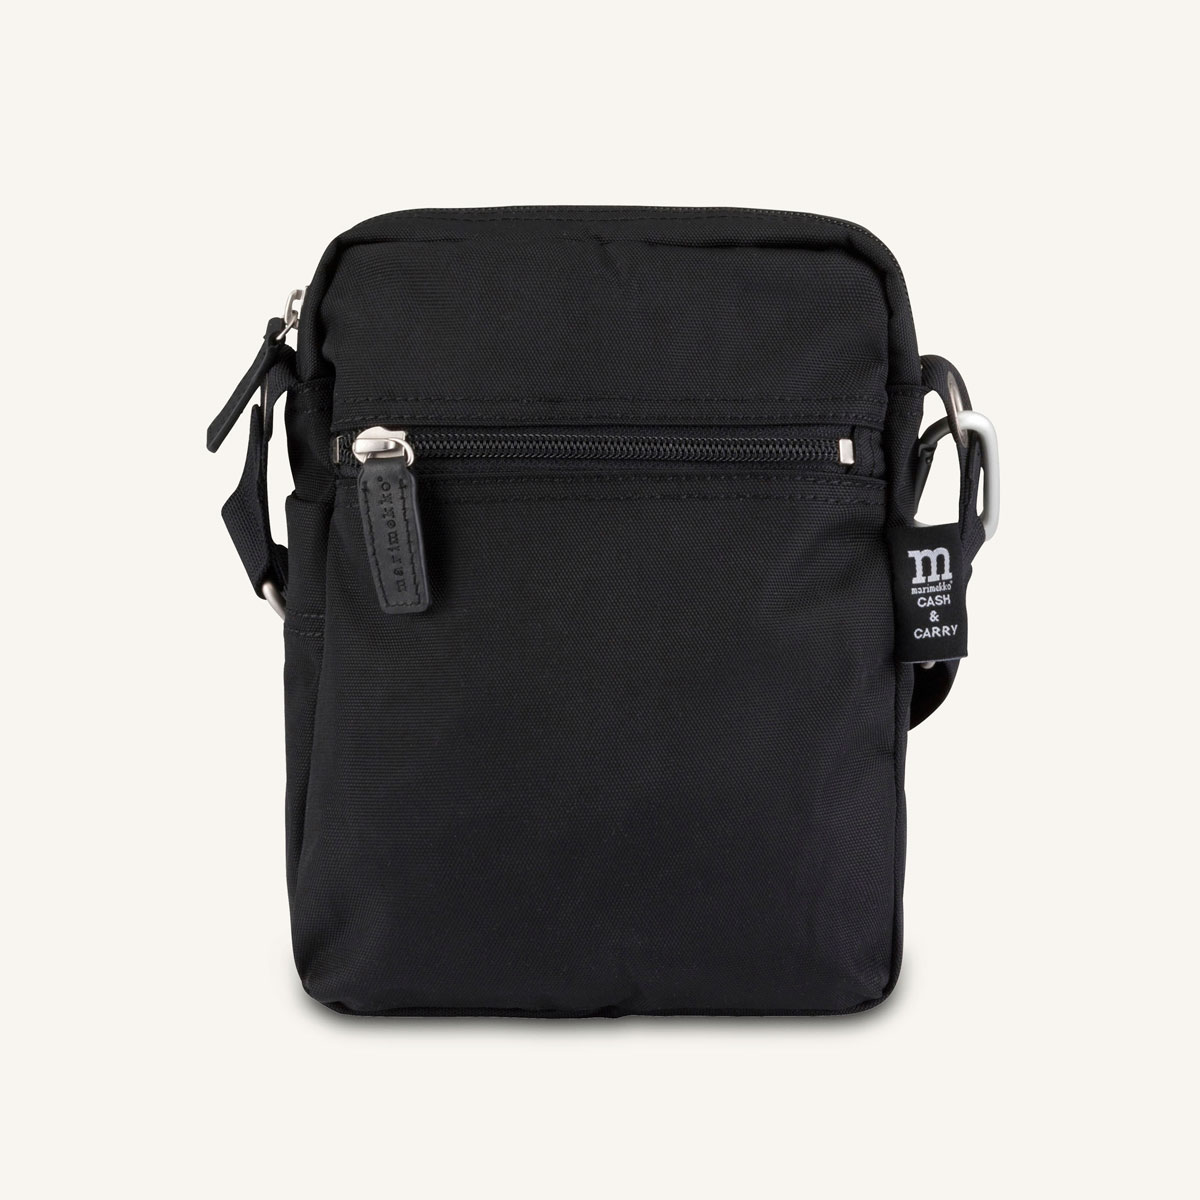 Marimekko Cash Carry Black Bag